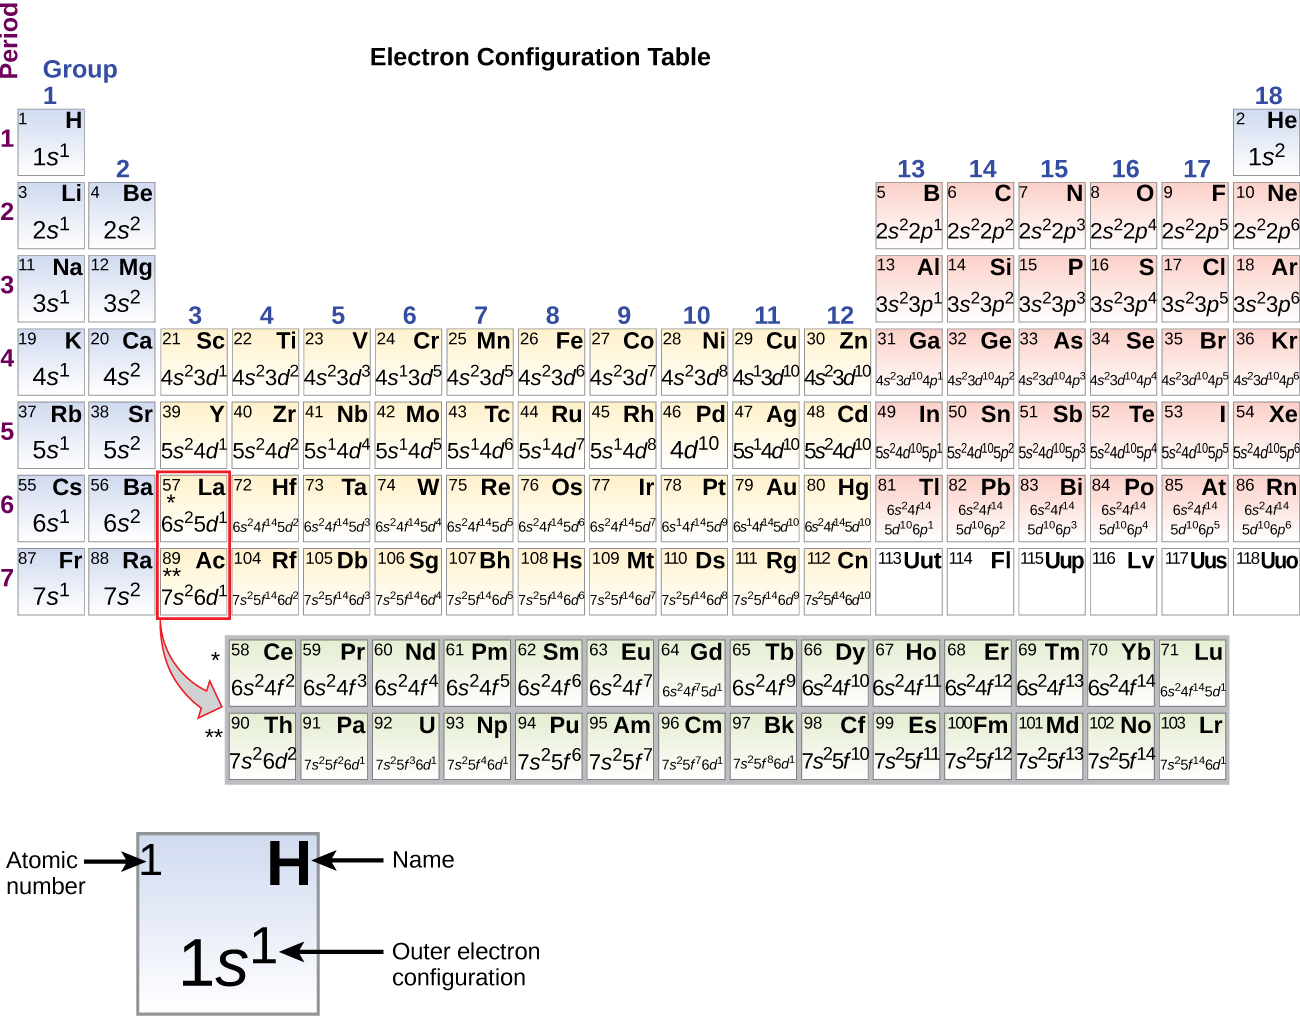 64 electronic structure of atoms electron configurations a periodic table entitled electron configuration table is shown the table buycottarizona